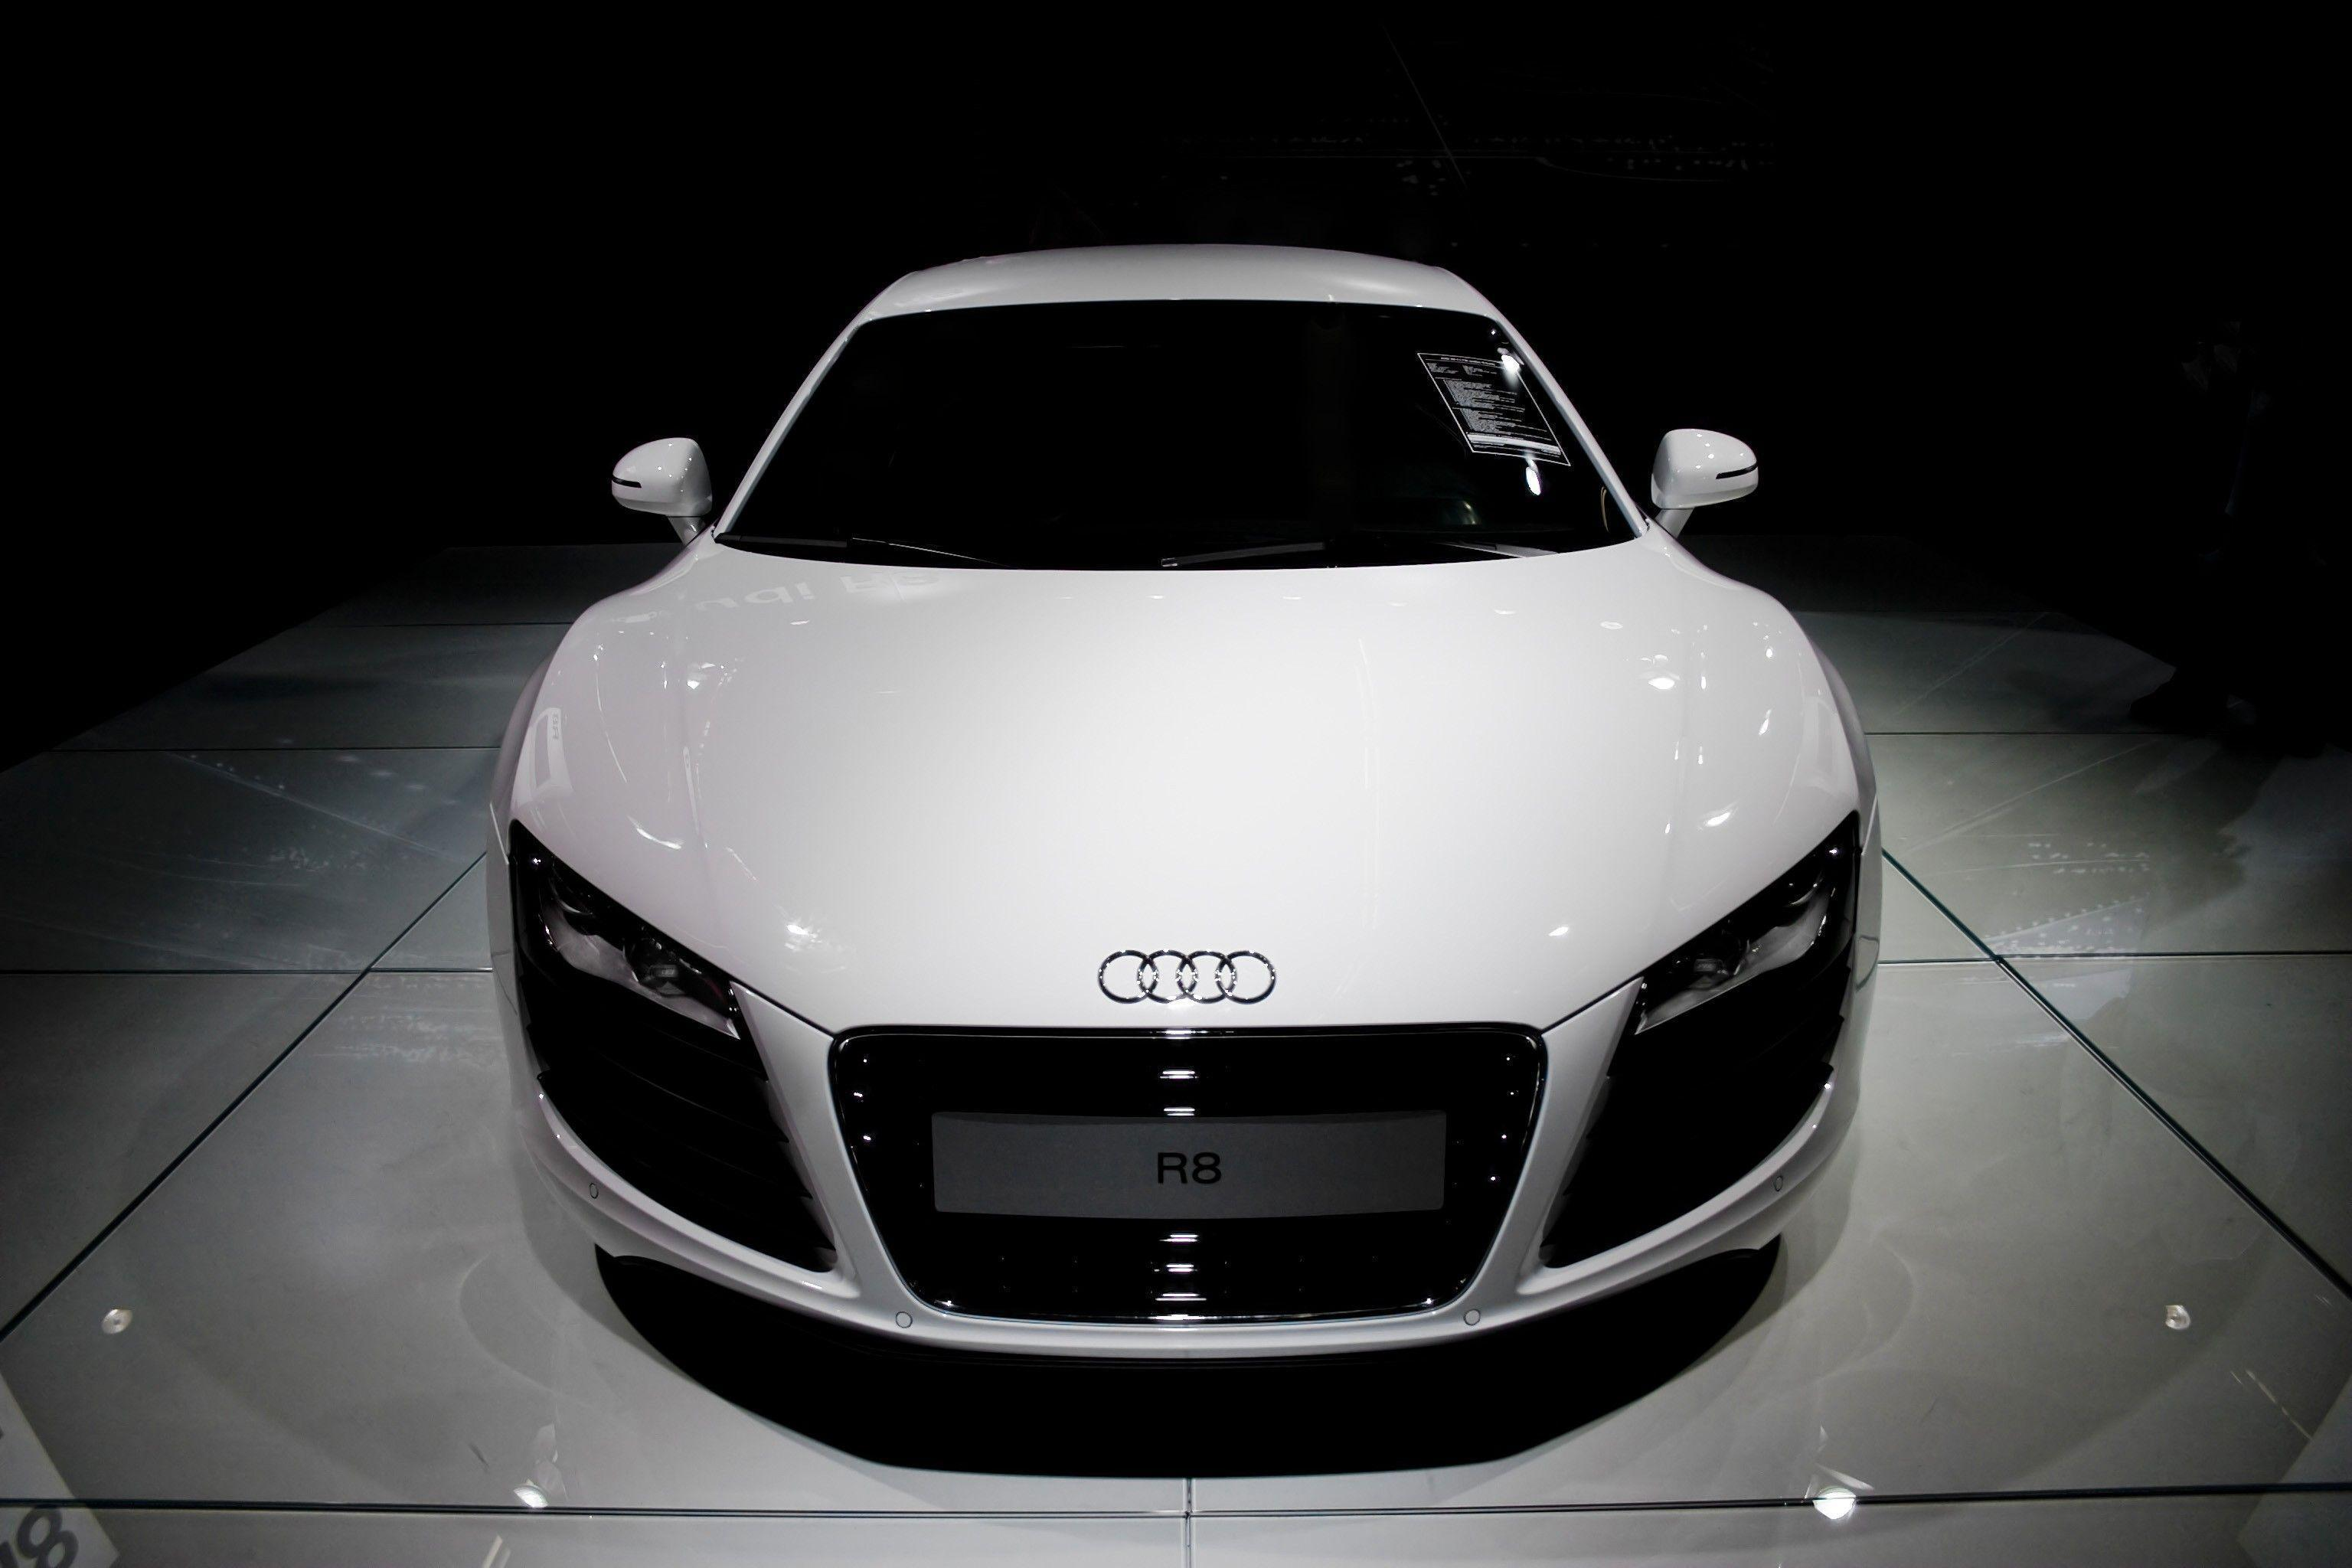 Black wallpapers 1080p wallpaper cave - Audi R8 Hd Wallpapers Wallpaper Cave